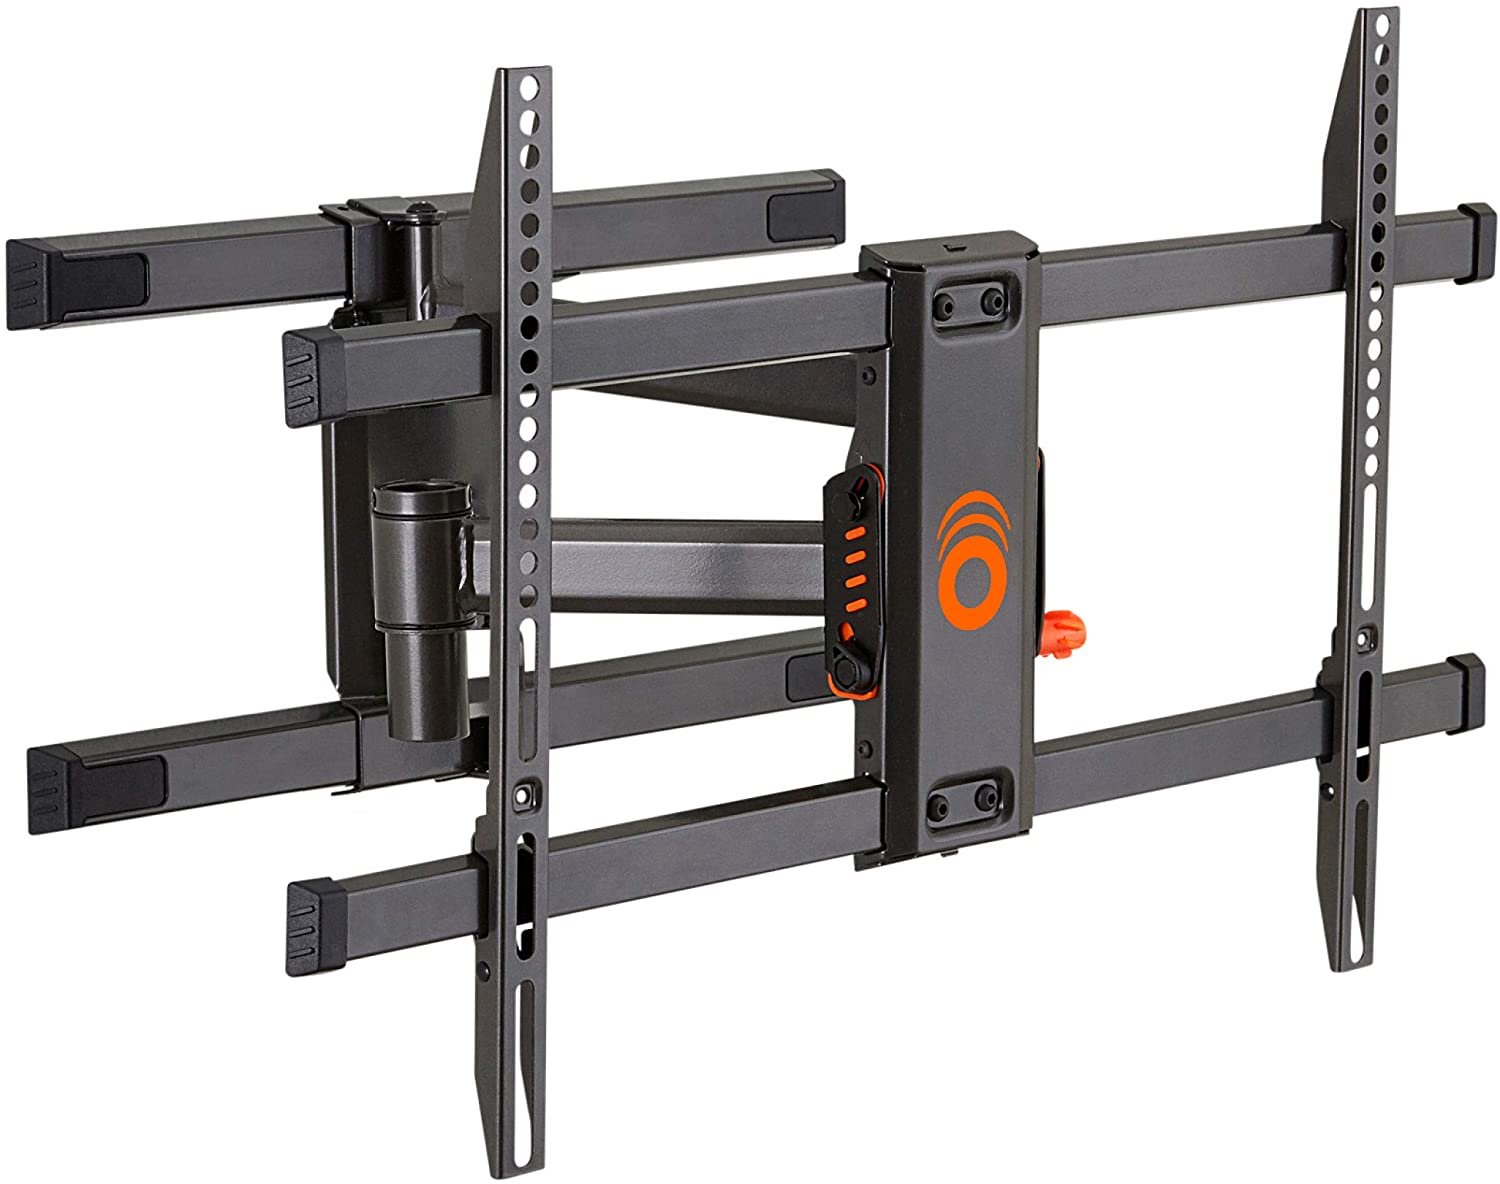 Articulating tv mount by Modern TV & Audio